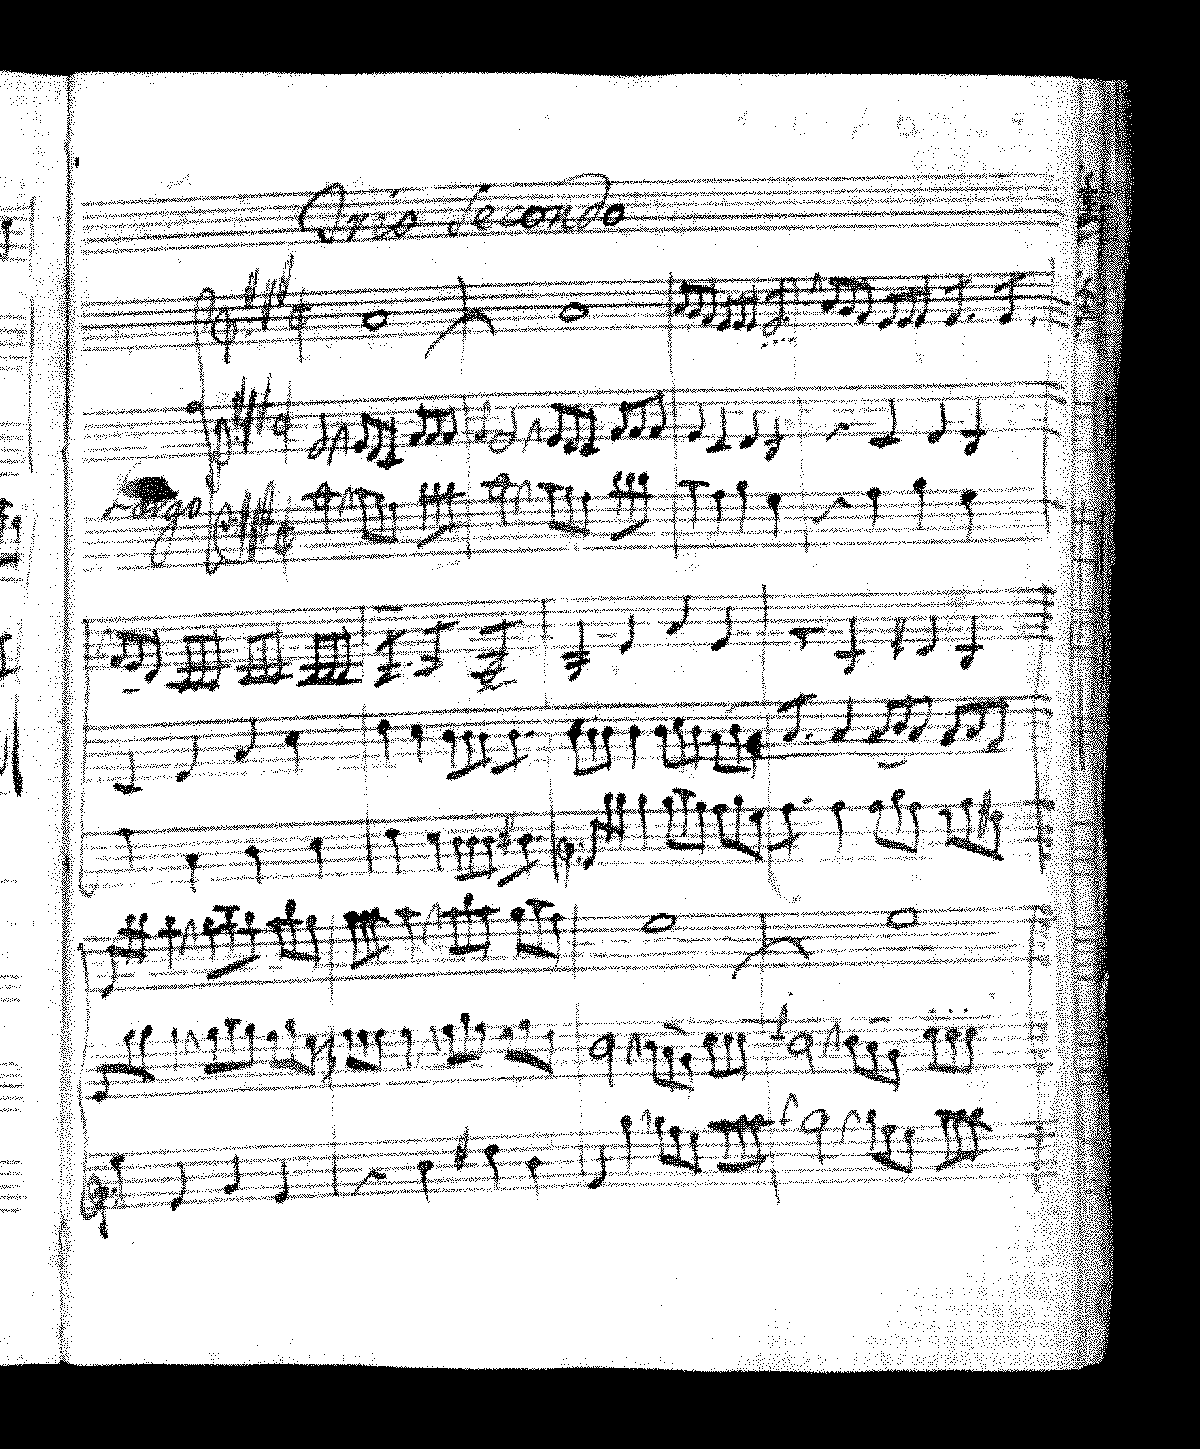 PMLP78127-Boccherini - Trio for 2 Violins and Cello No02 in AM - G79.pdf